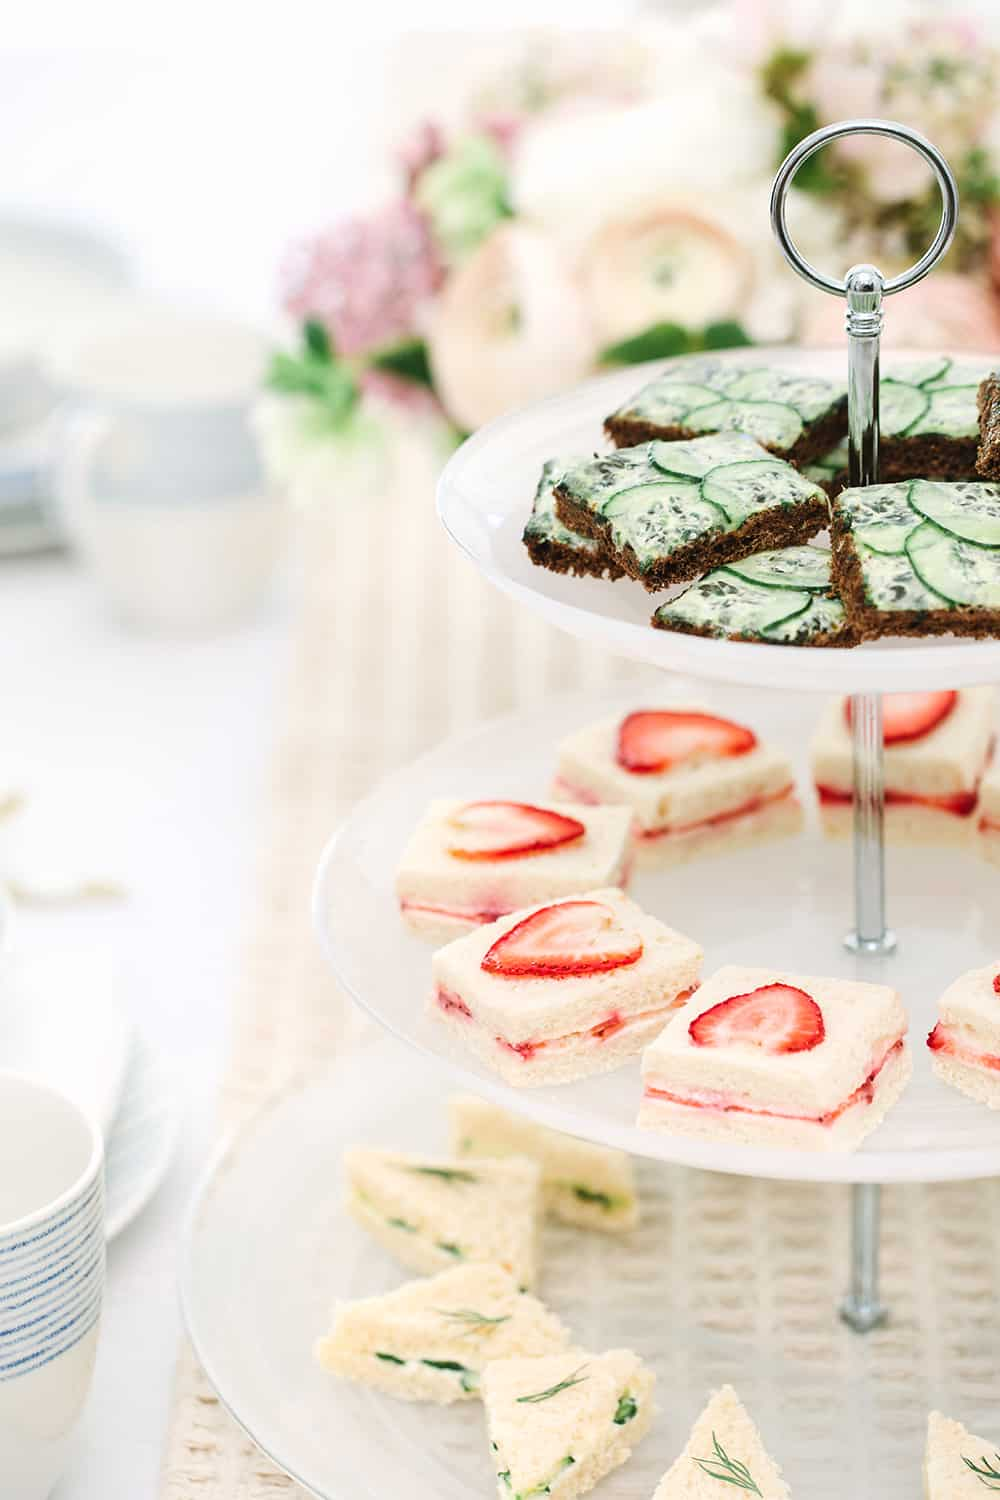 Tea sandwiches on a platter from Macy's Wedding registry.